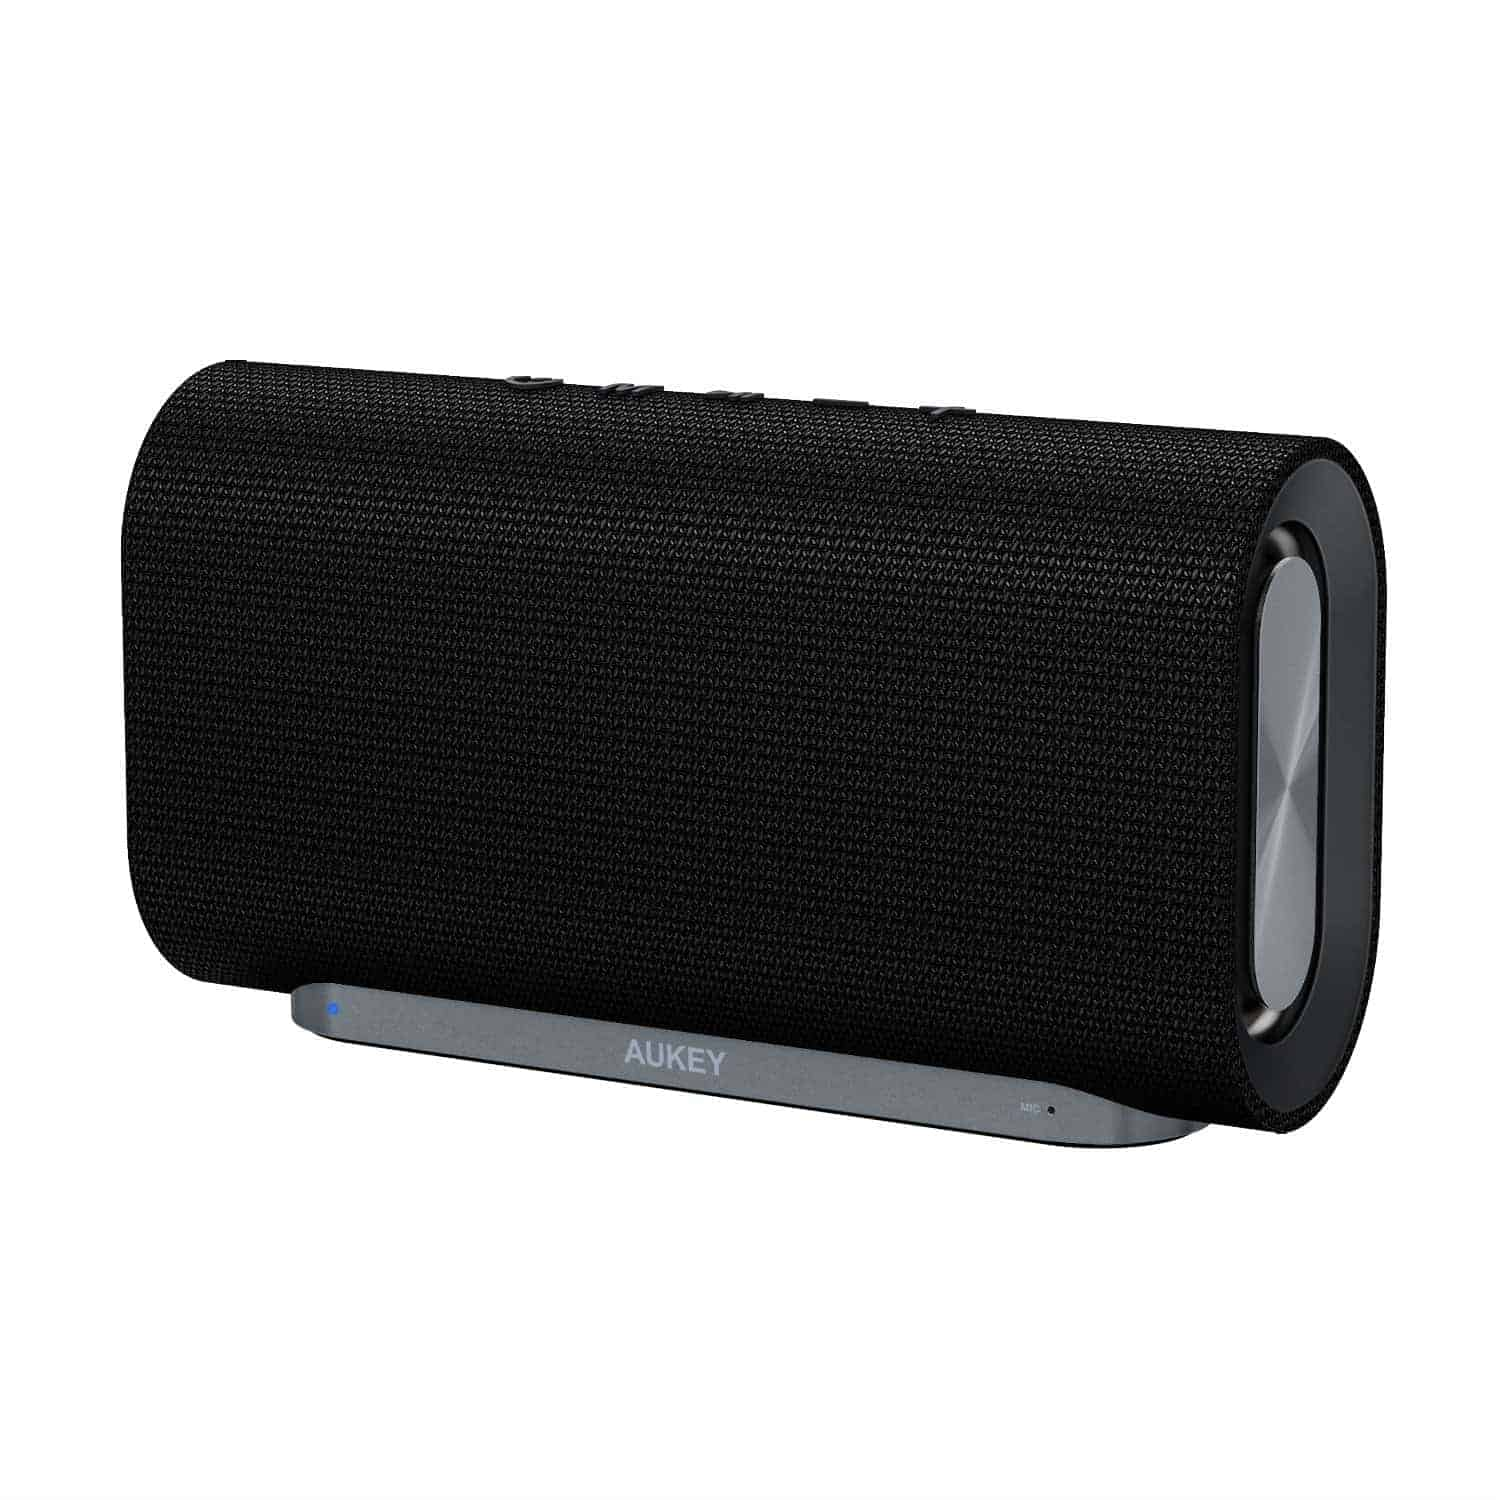 best portable speakers. this is aukey\u0027s latest bluetooth speaker. it\u0027s one of the best looking speakers around, at price point. wrapped in a fabric that keeps portable